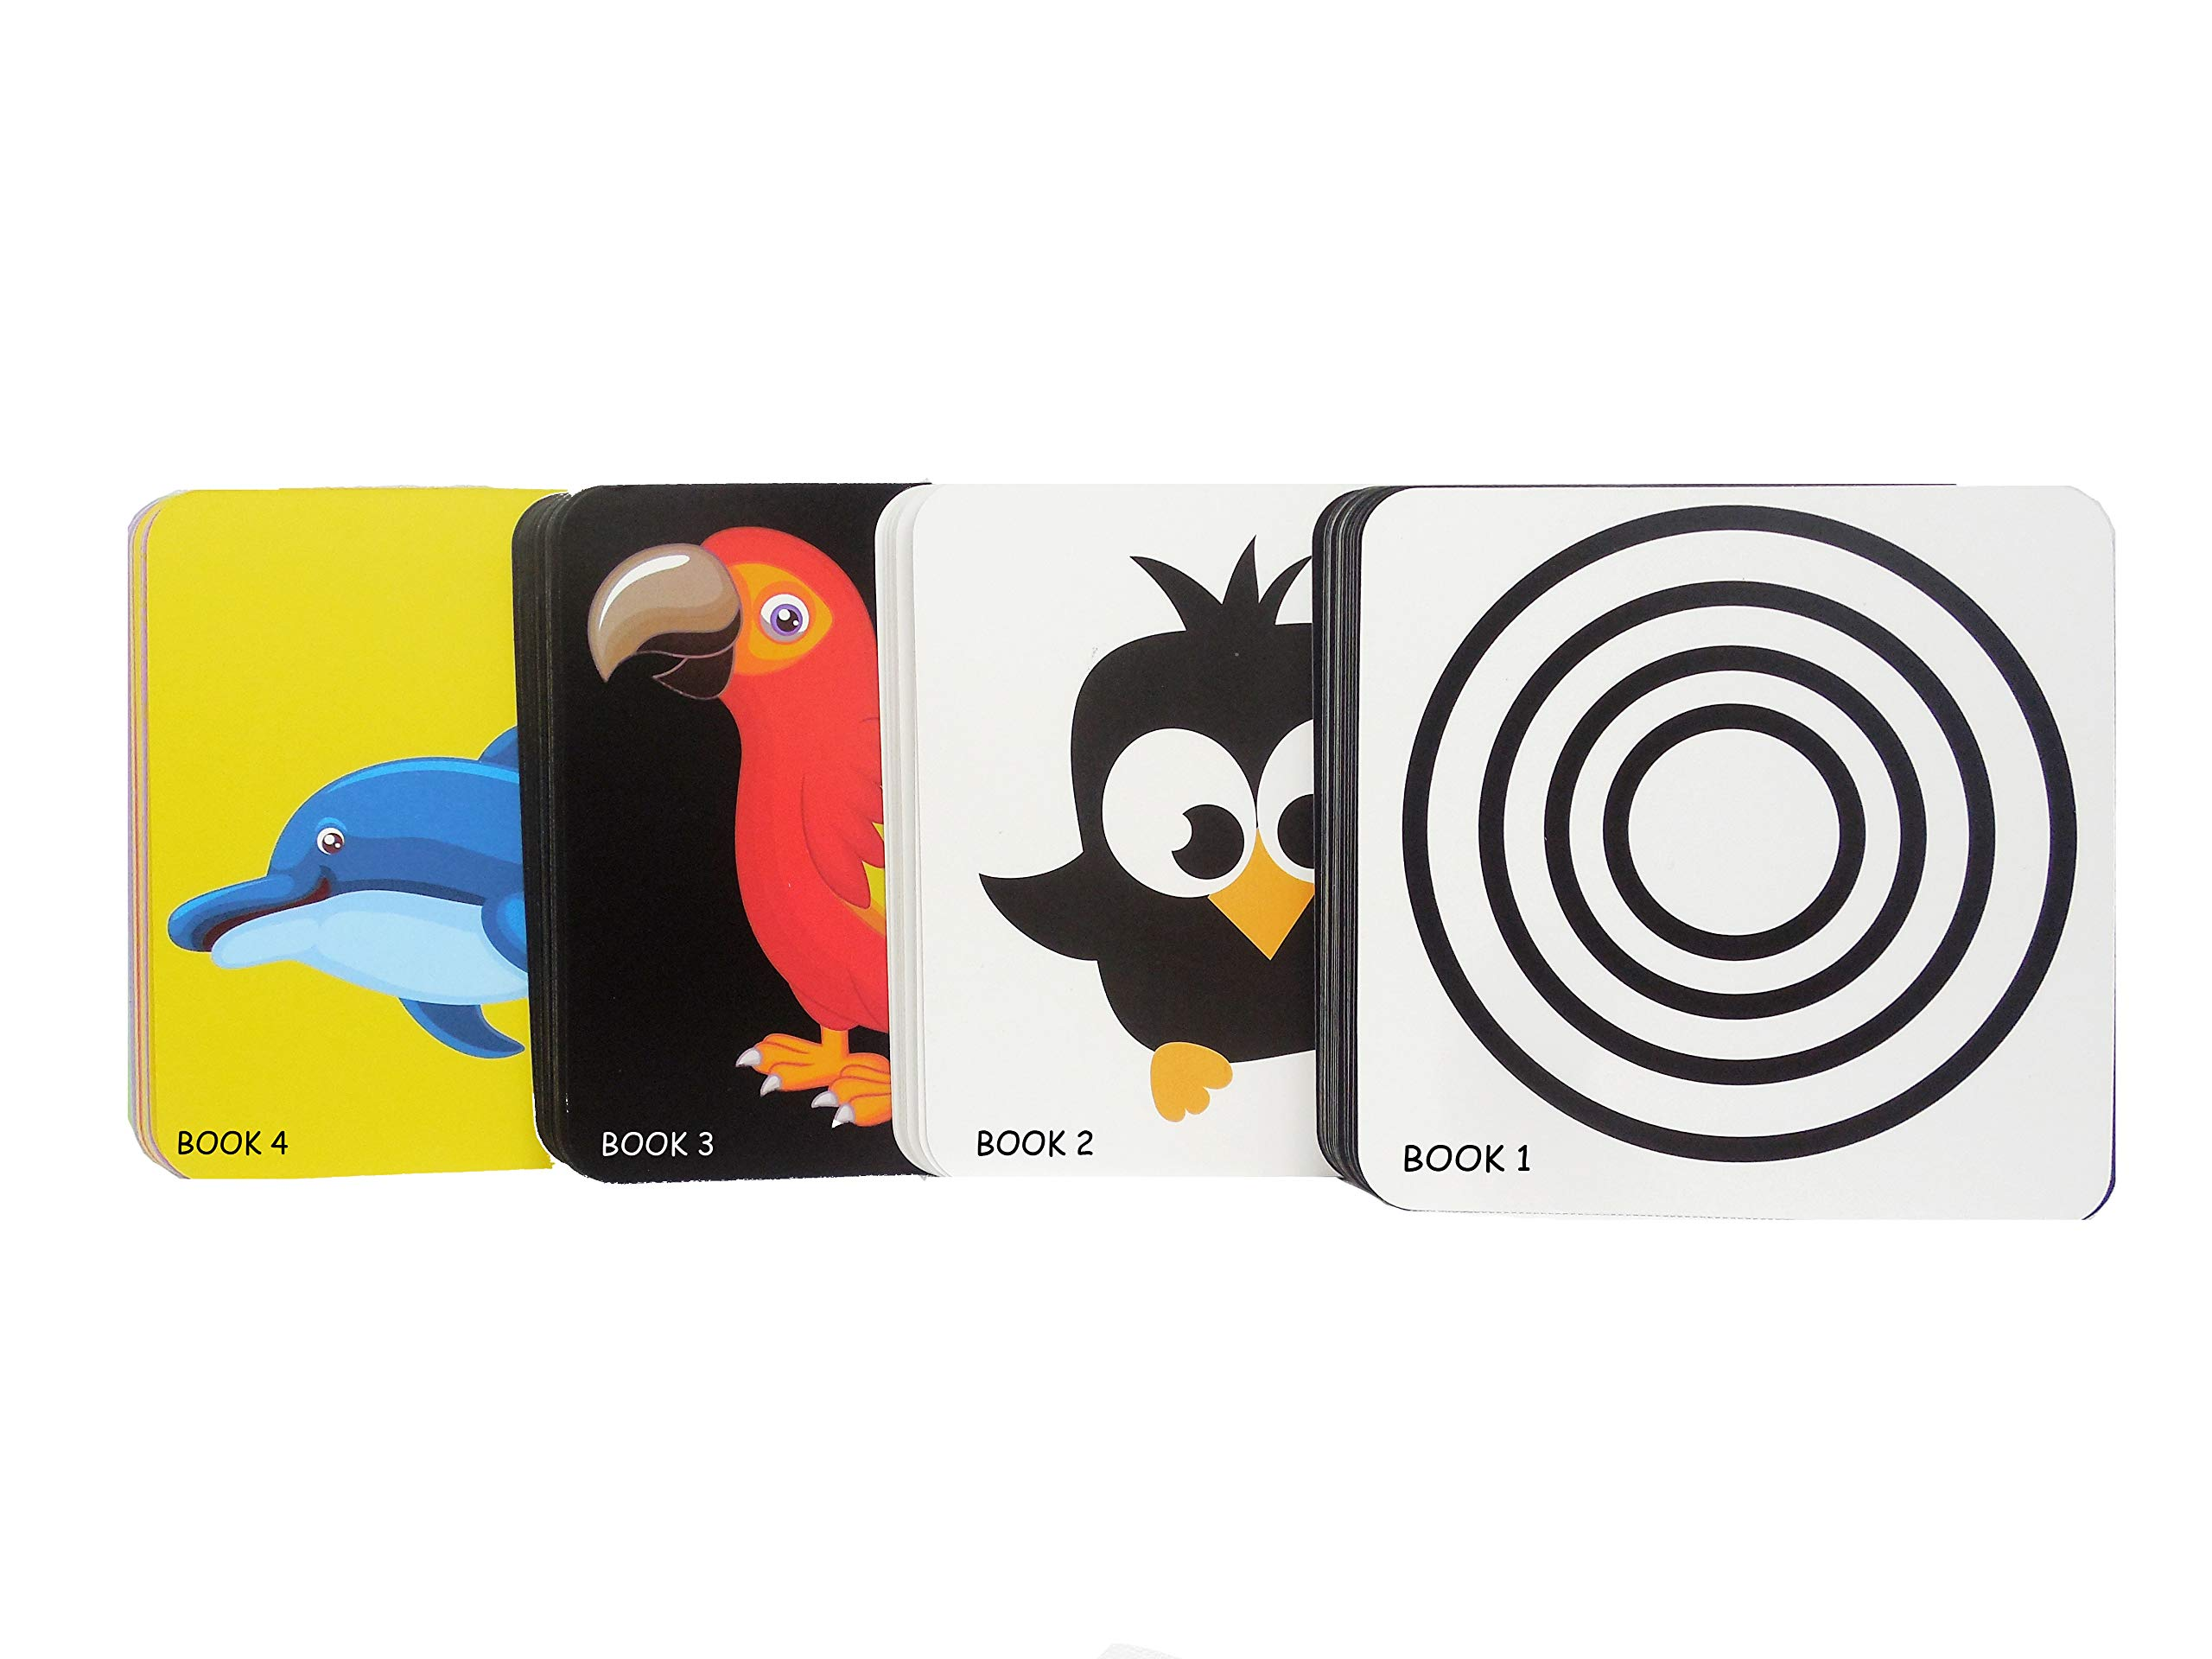 Black White Flash Cards for Baby Set of 4 - Black White And Color High Contrast Flash Cards,72 Cards of 144 pictures-0 To 24 Months